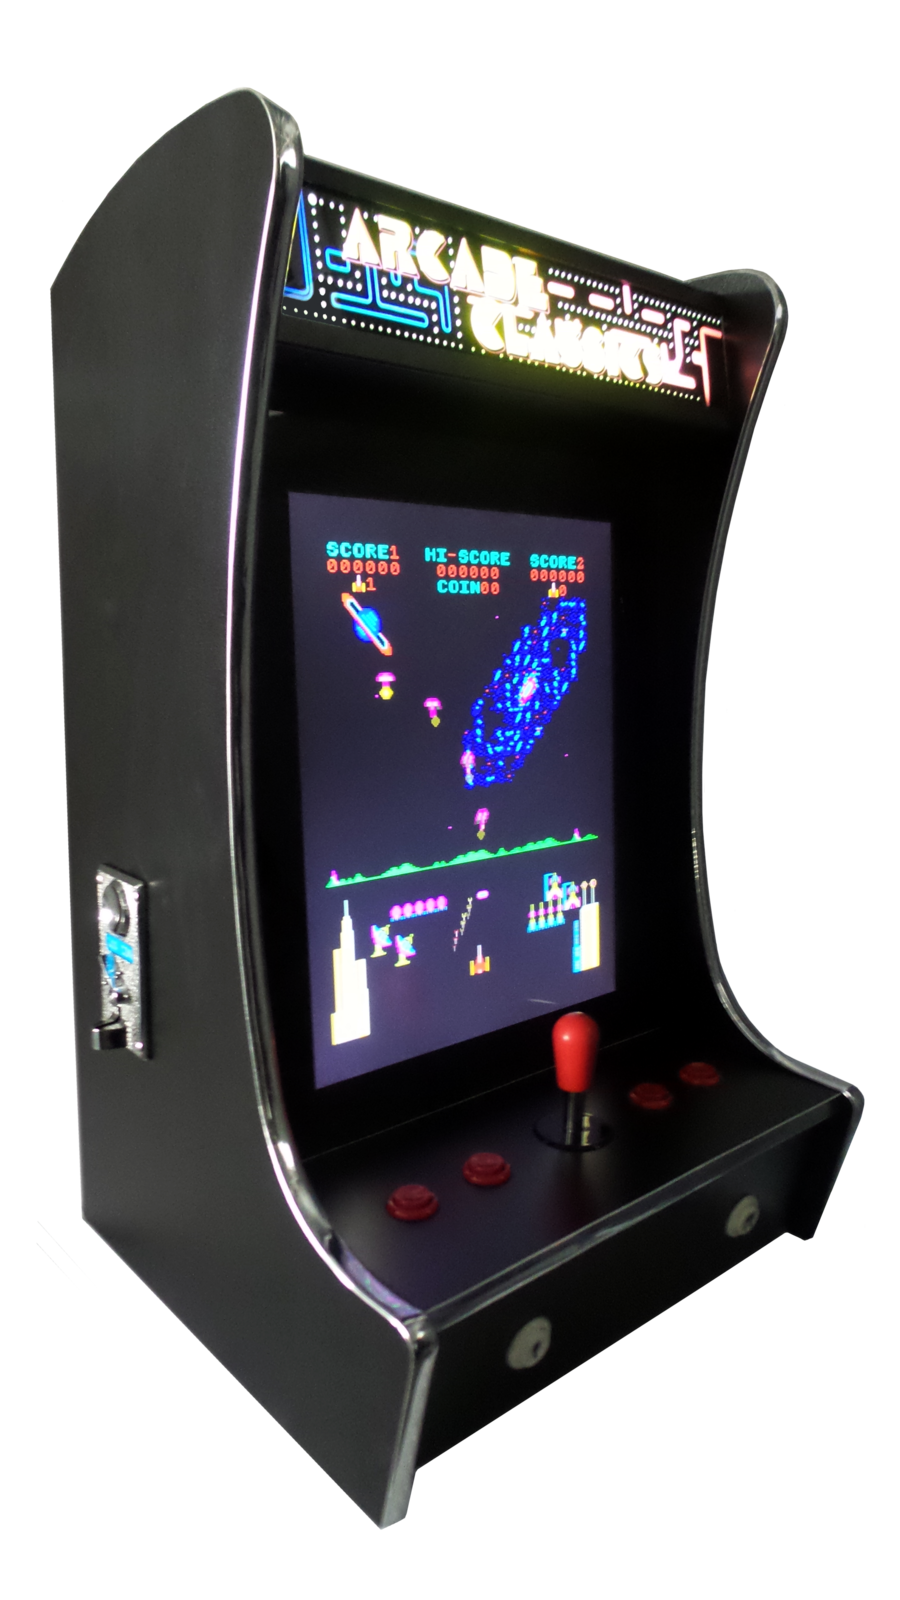 Bartop Classic Arcade Machine and 50 similar items